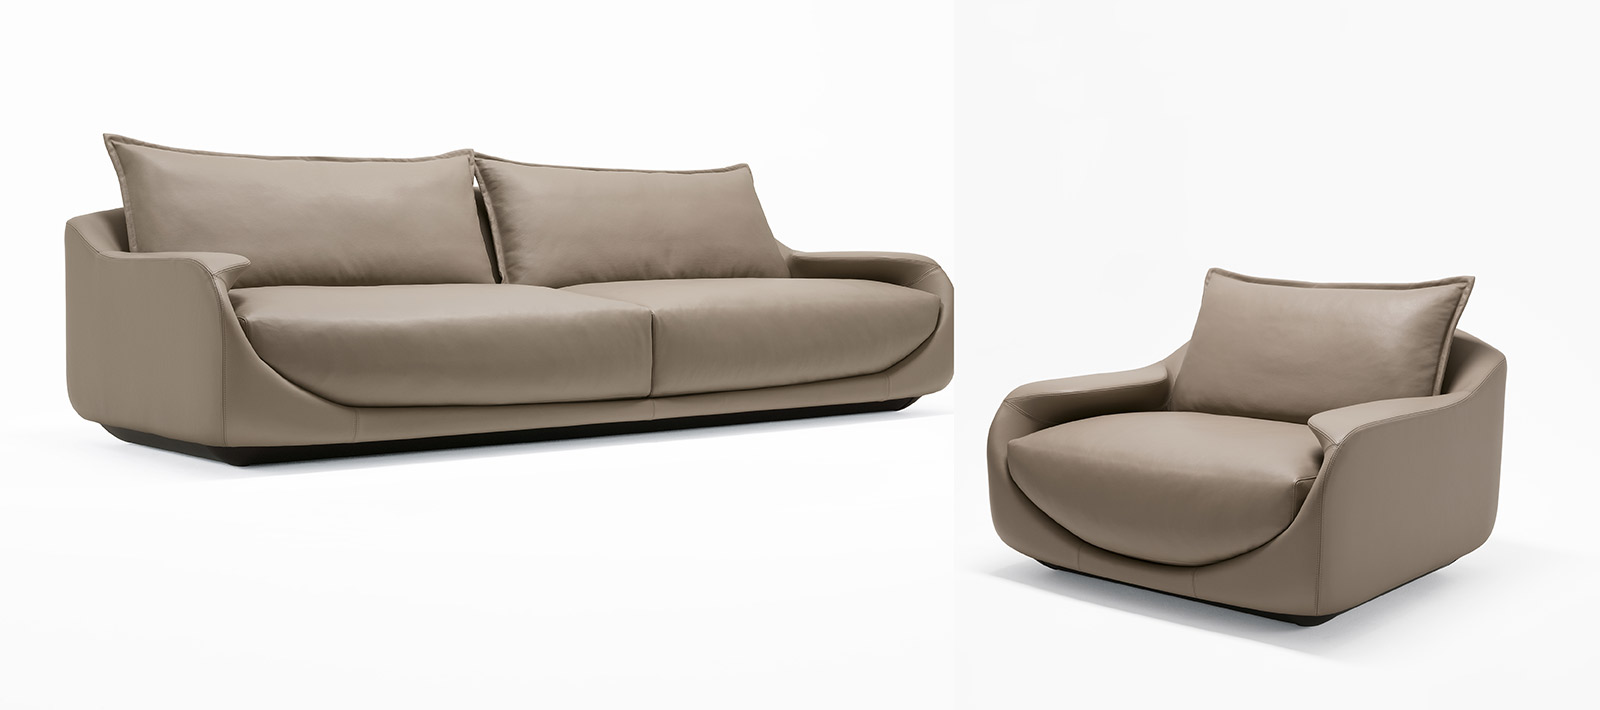 Martini Loveseat & Chair by Rossella Pugliatti for Giorgetti